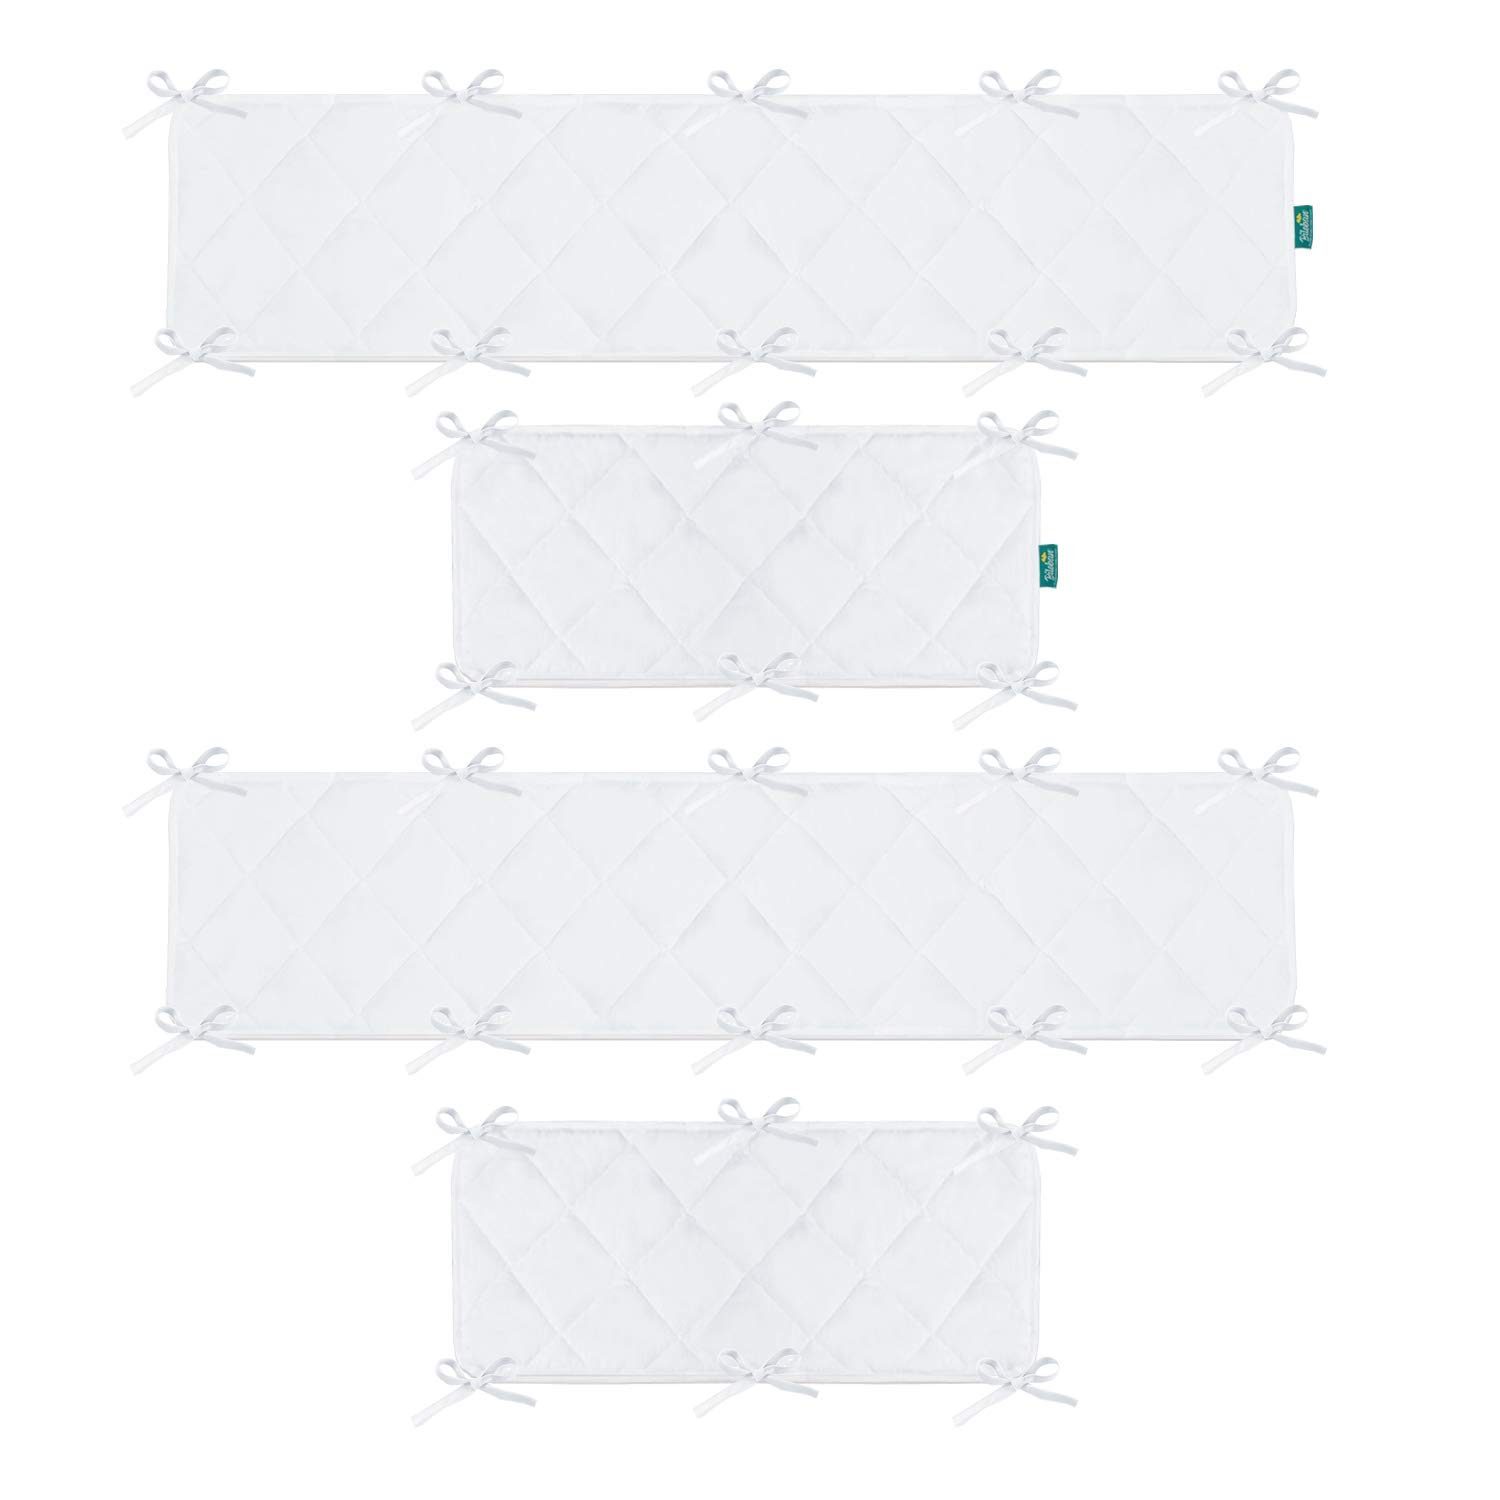 Safe Nursery Crib Bumper Pad, for Standard Size (52''x28'') Crib Toddler Bed, Washable Crib Bedding Bumper Liners 4 Pieces/Set, White by Biloban